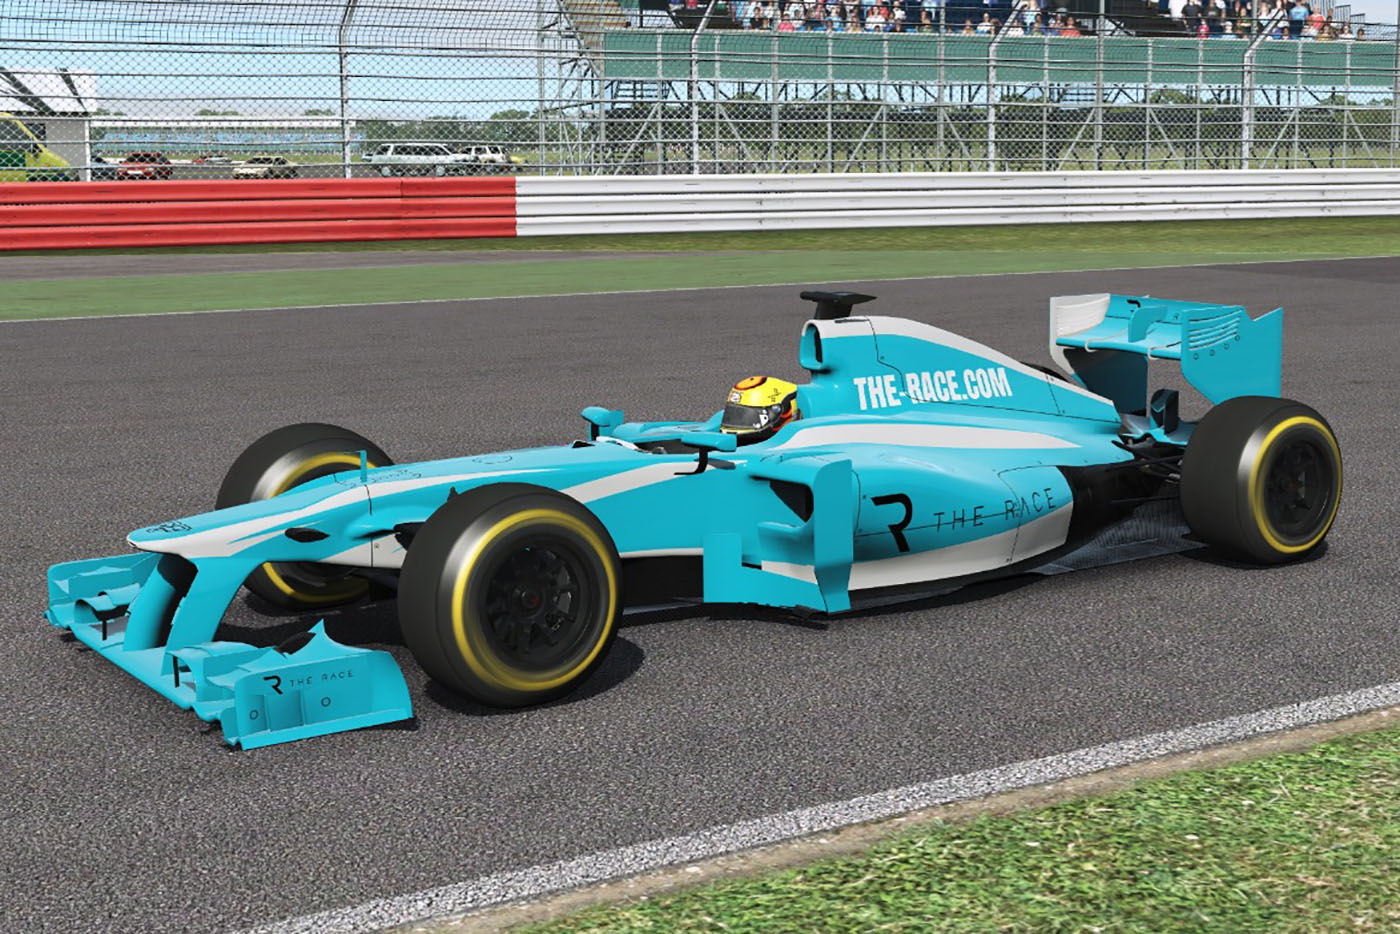 The Race All-Star Esports Battle rFactor 2 F1 livery